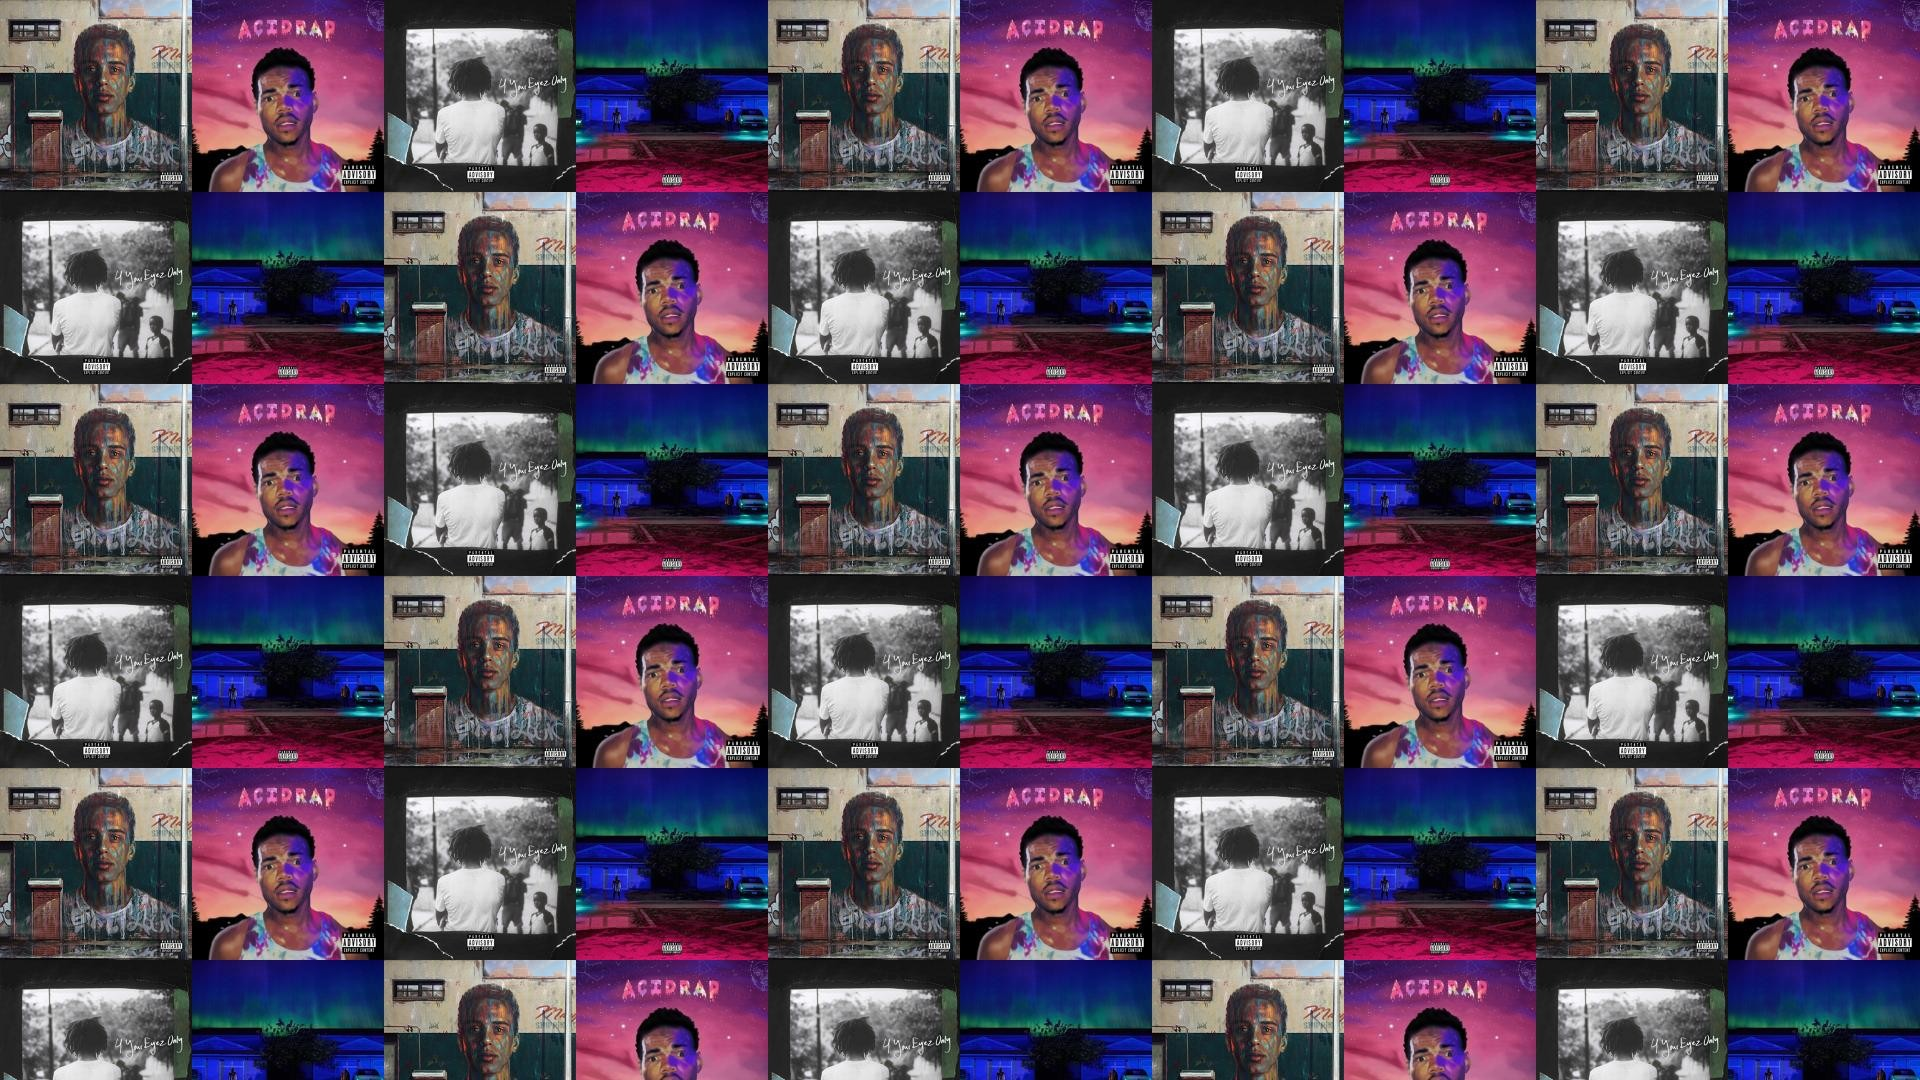 Logic Under Pressure Chance Rapper Acid Rap Wallpaper Â« Tiled Desktop  Wallpaper